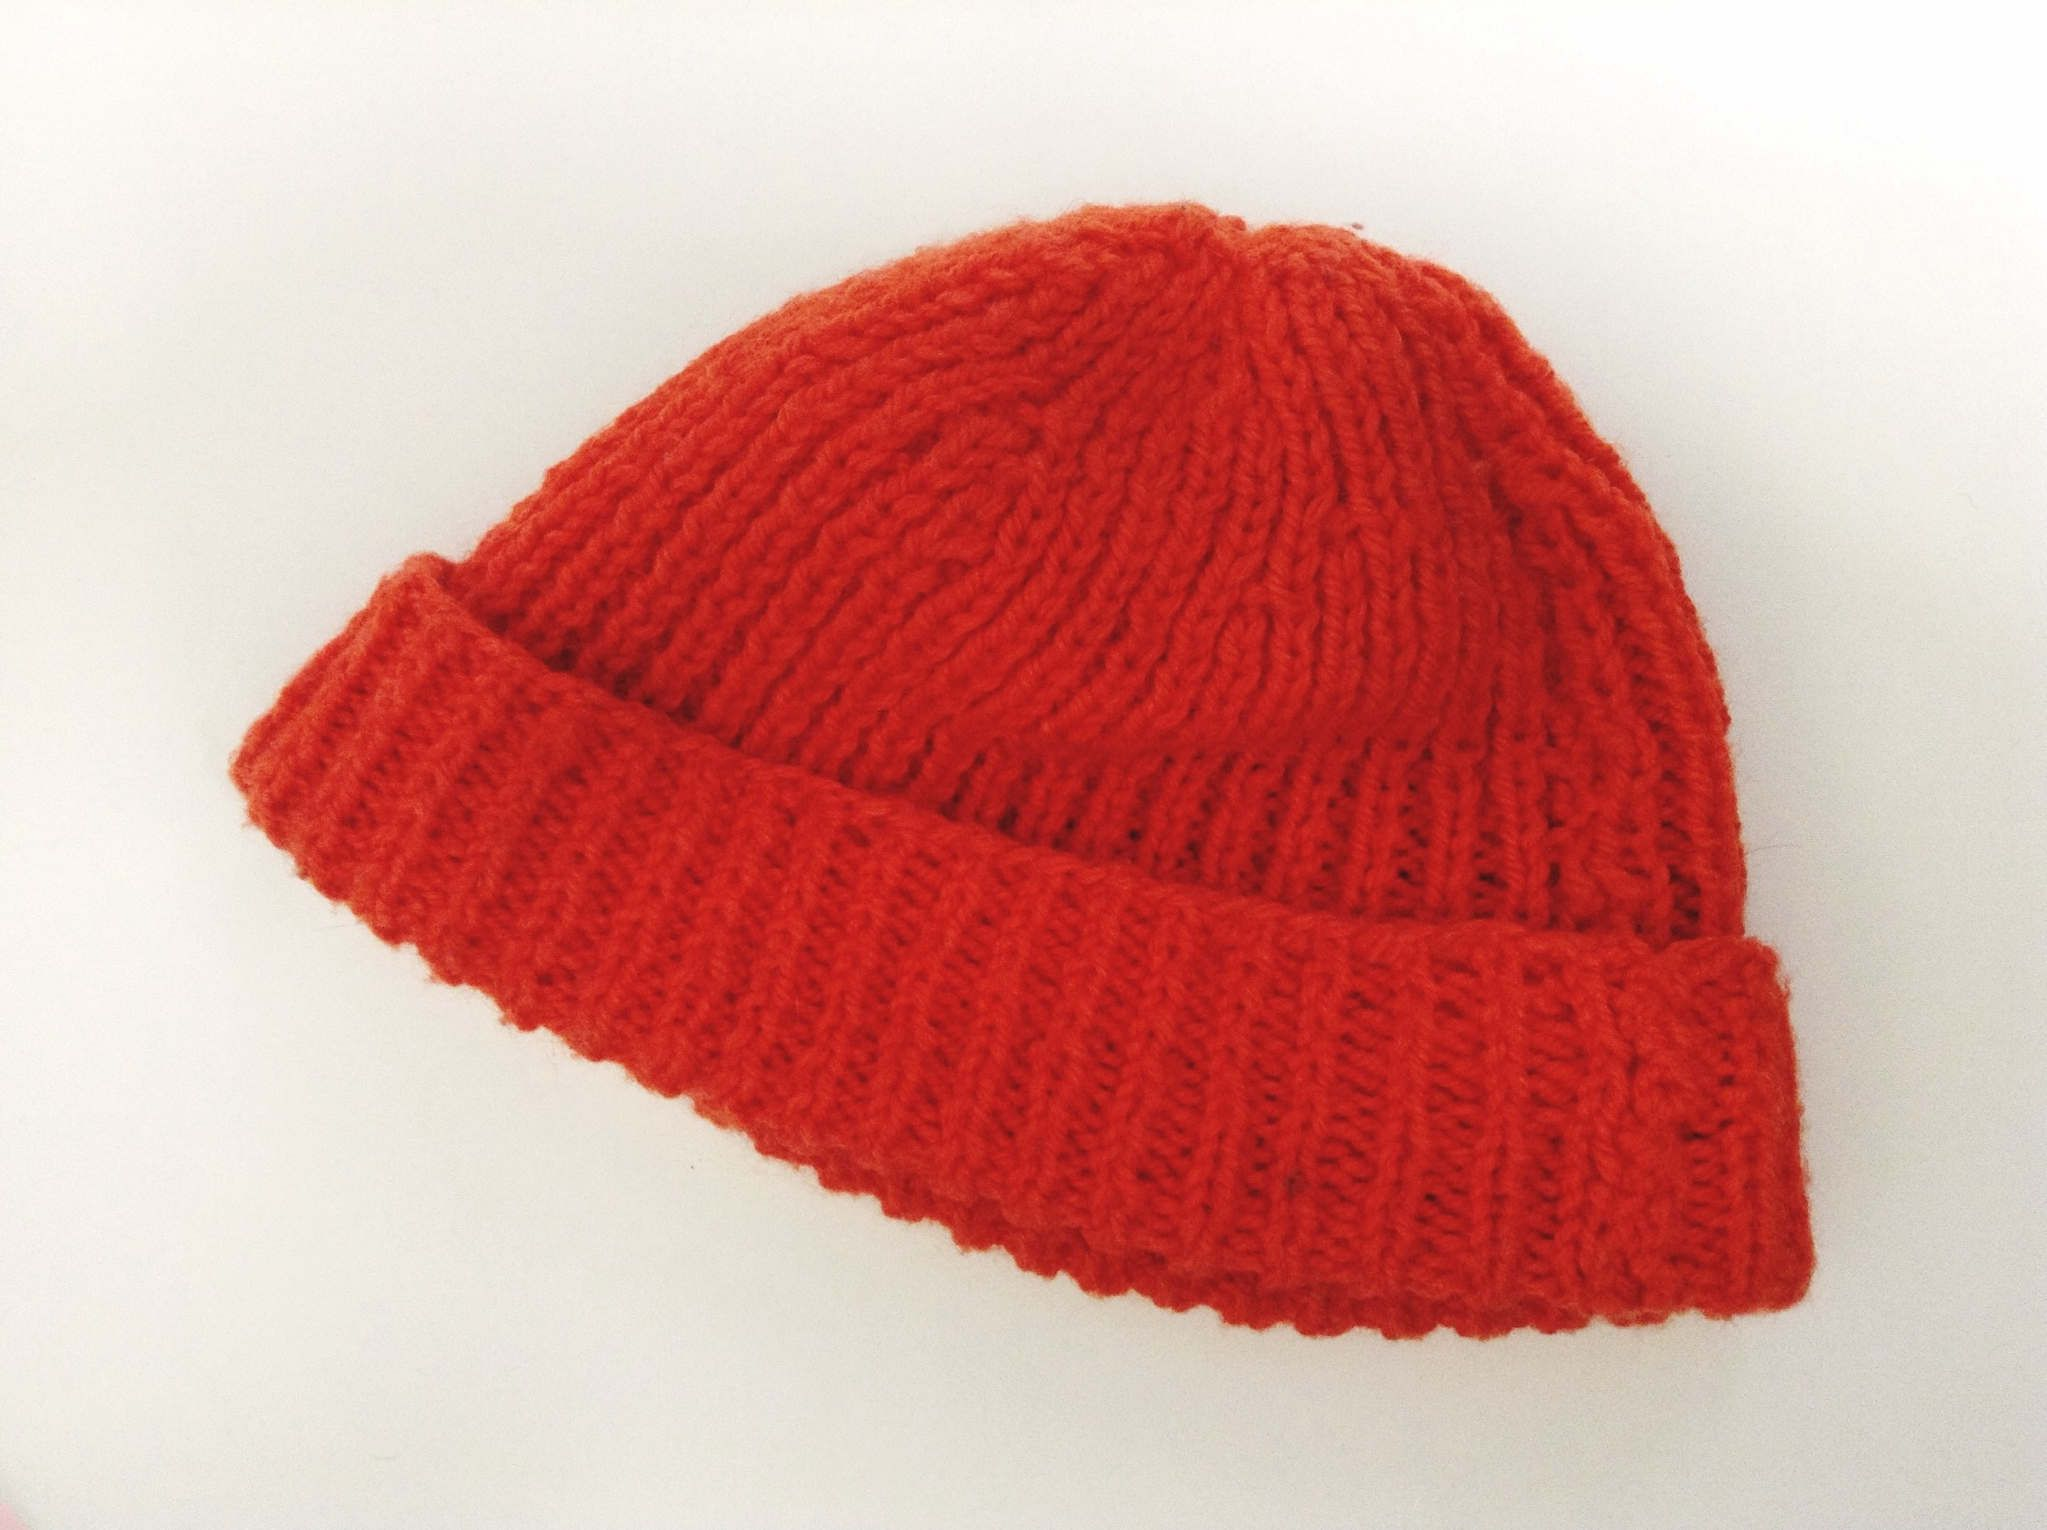 Double Knitting In The Round Hat : Free knitting pattern for a ribbed hat knit flat